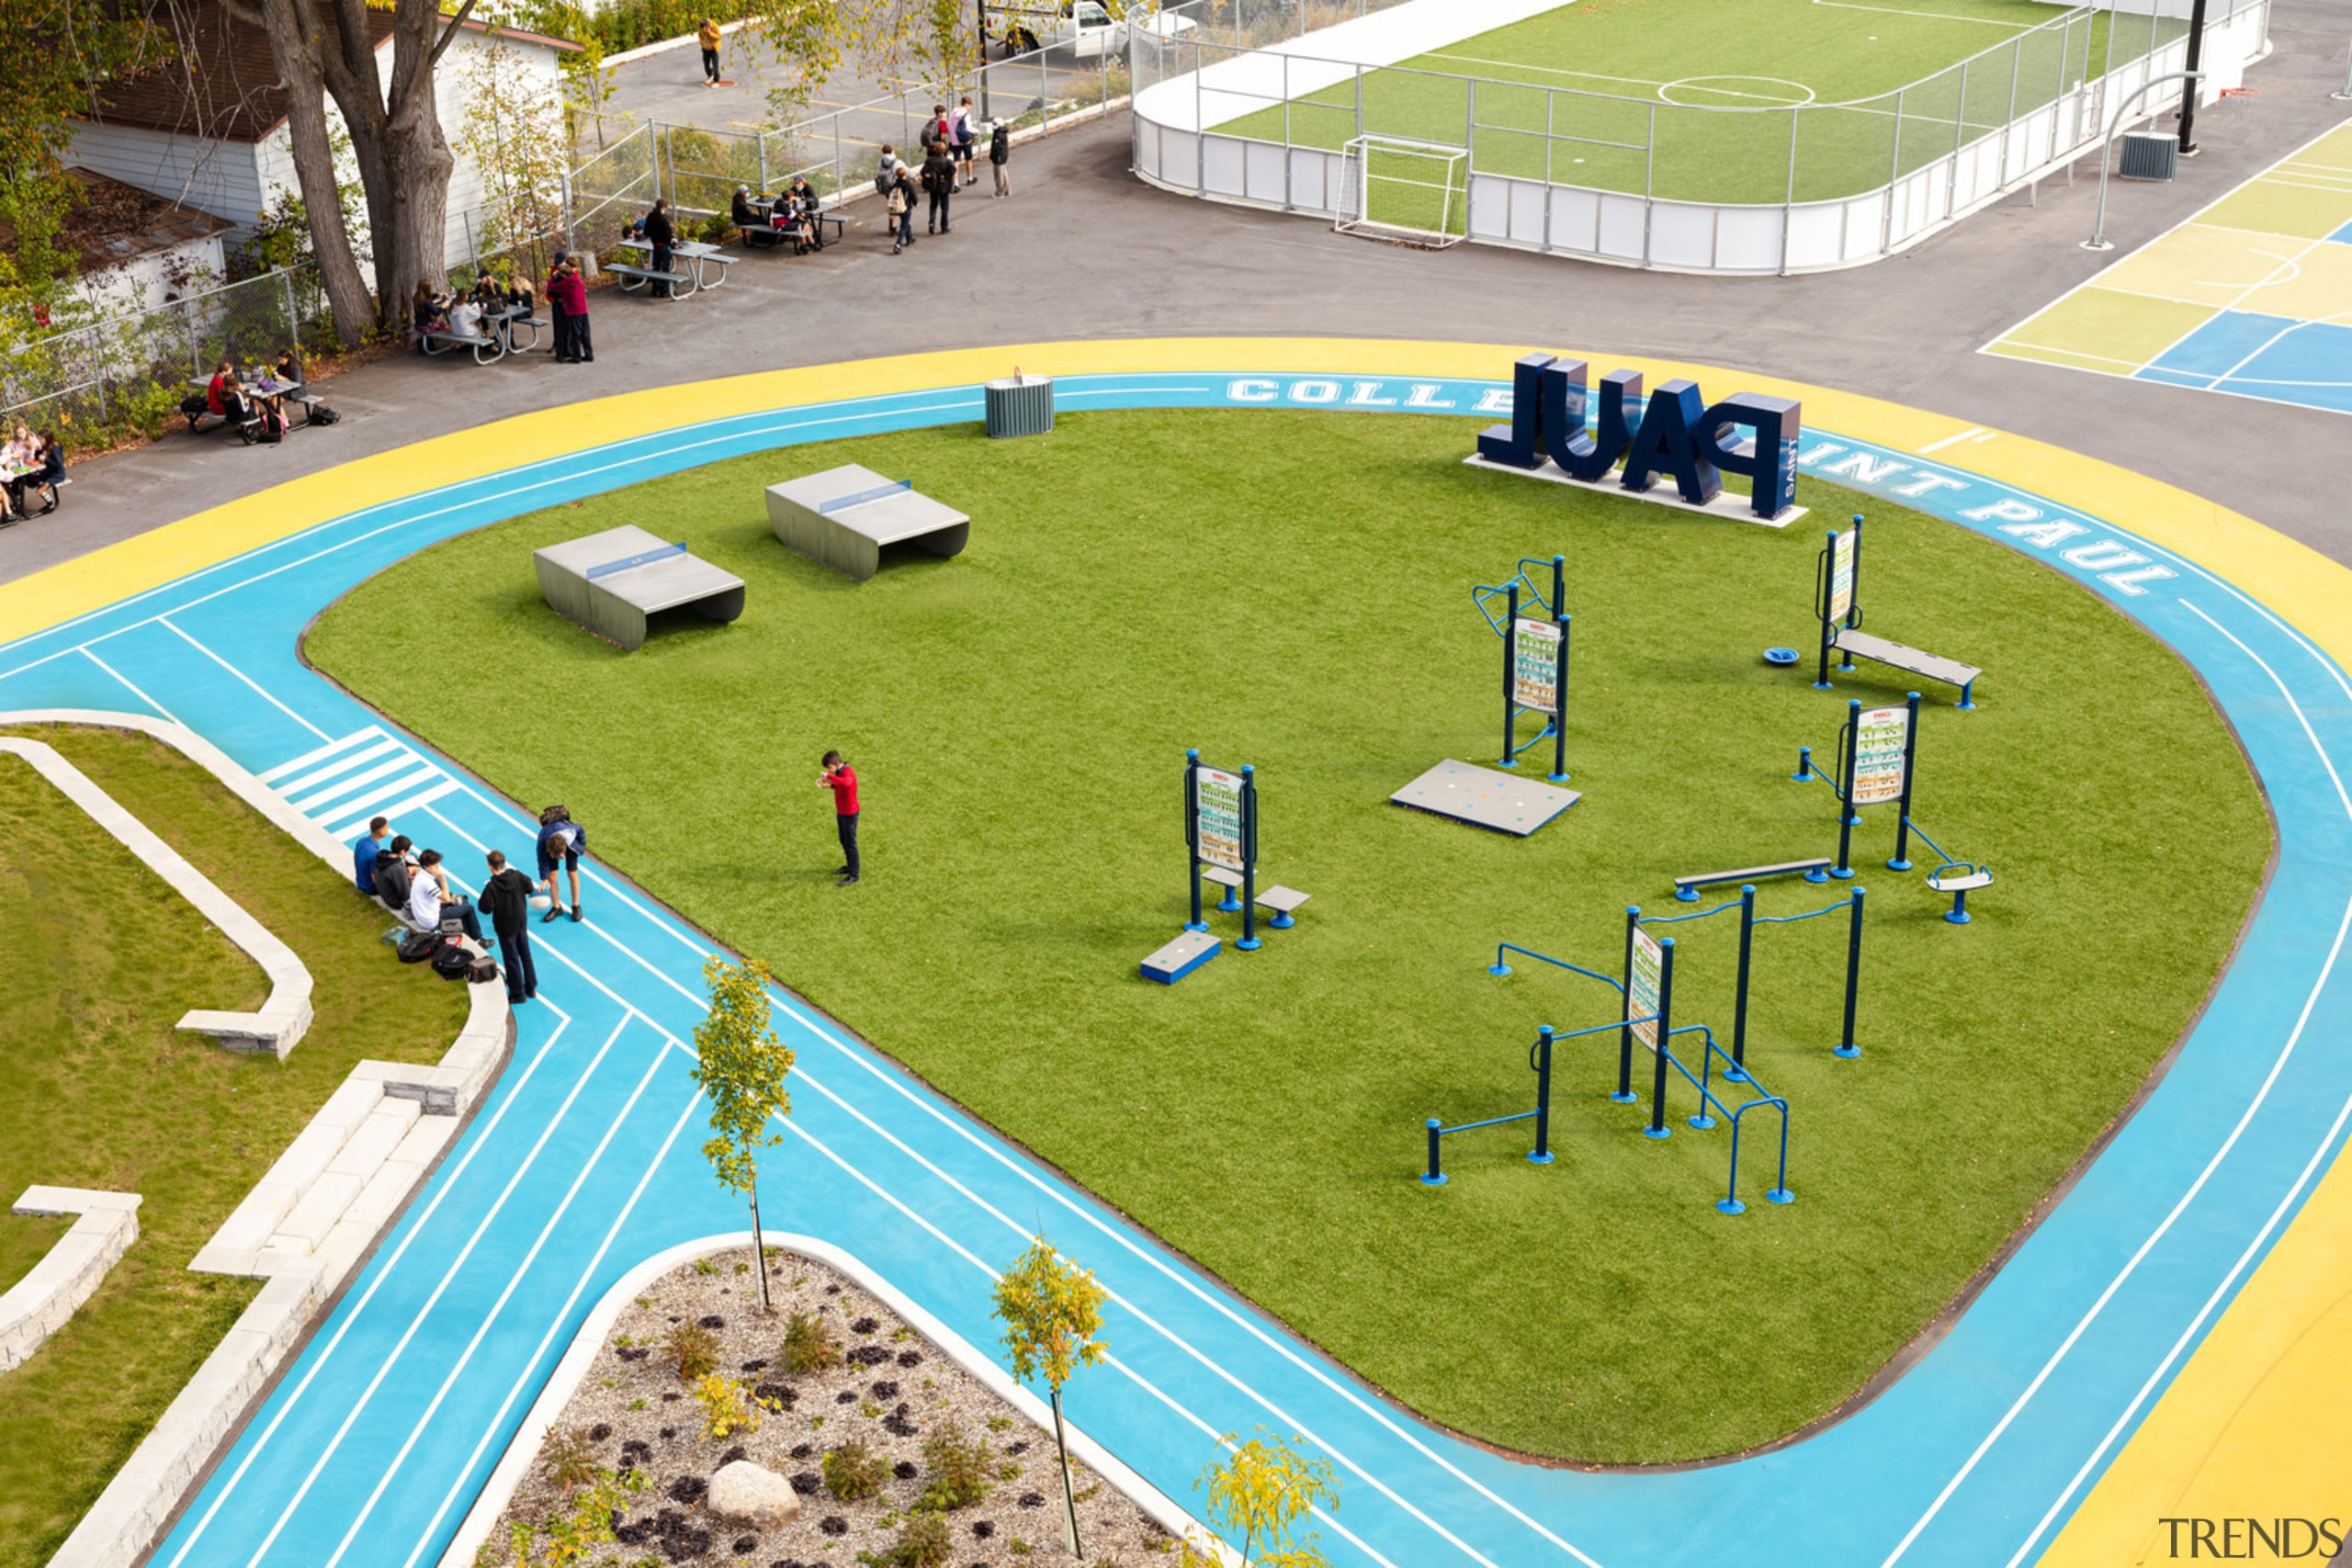 The school's training circuit and exercise modules.